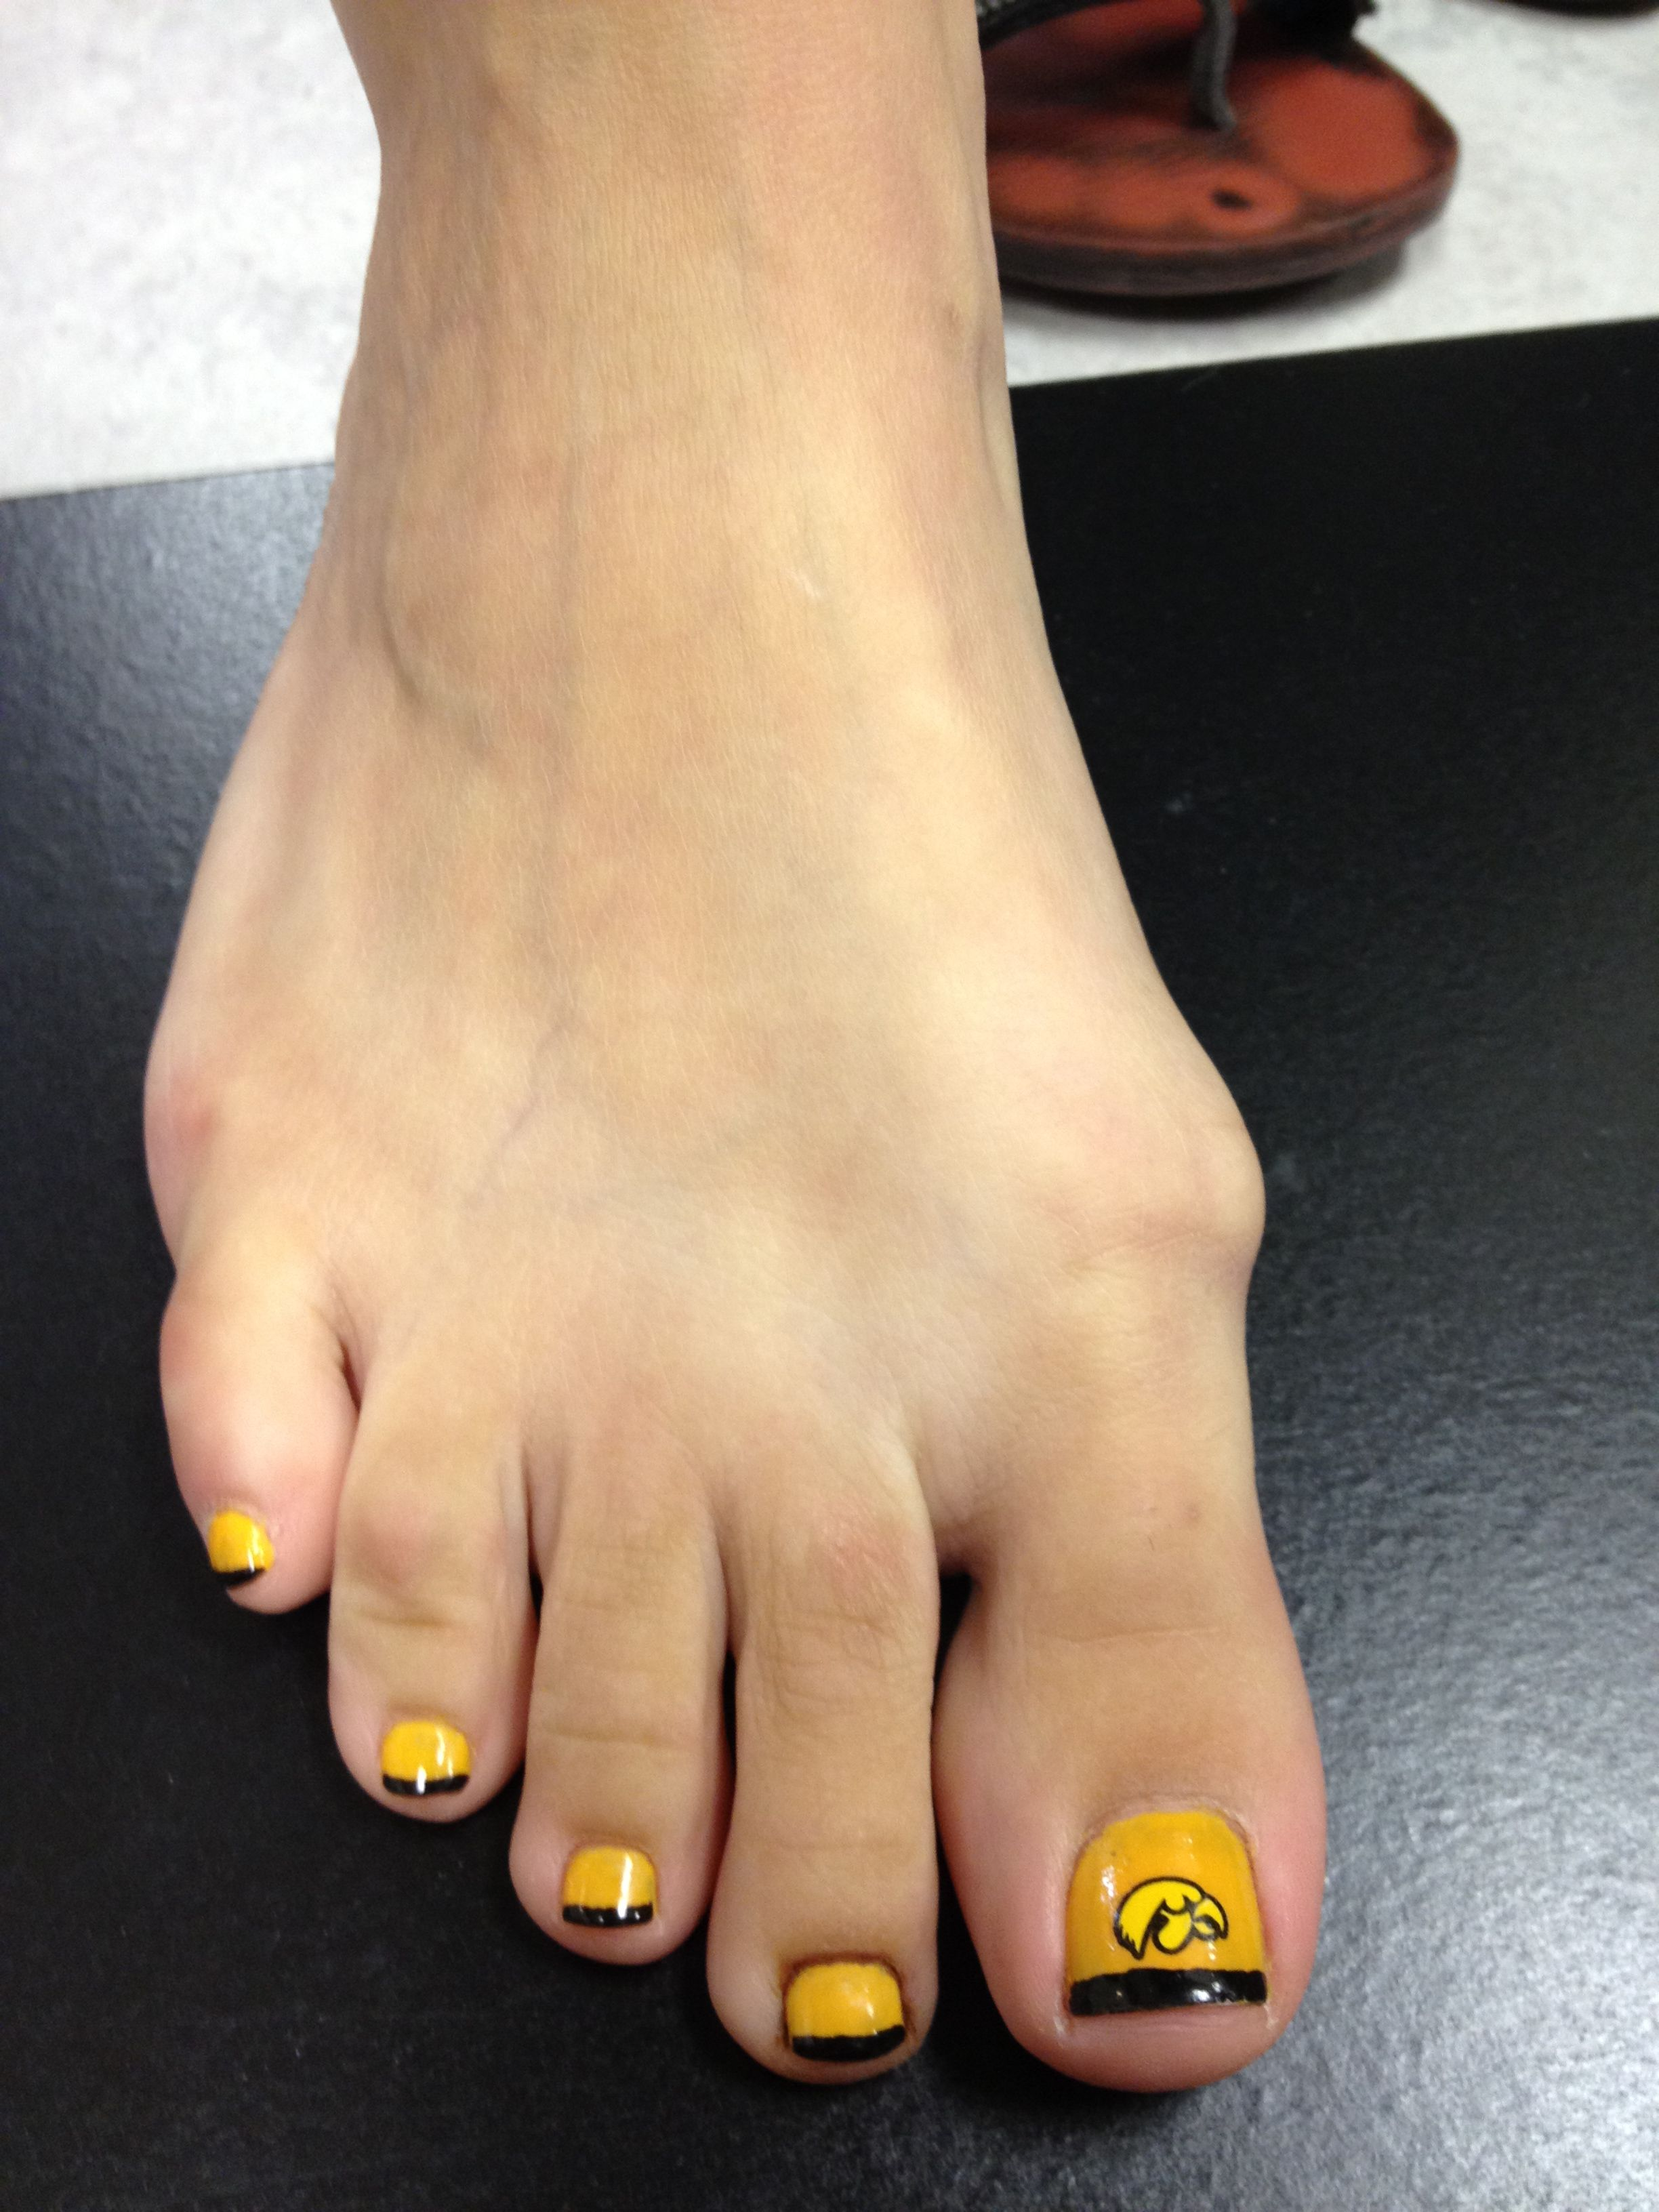 HAWKEYE PEDICURE available at City Looks Salon and Spa - Cedar ...